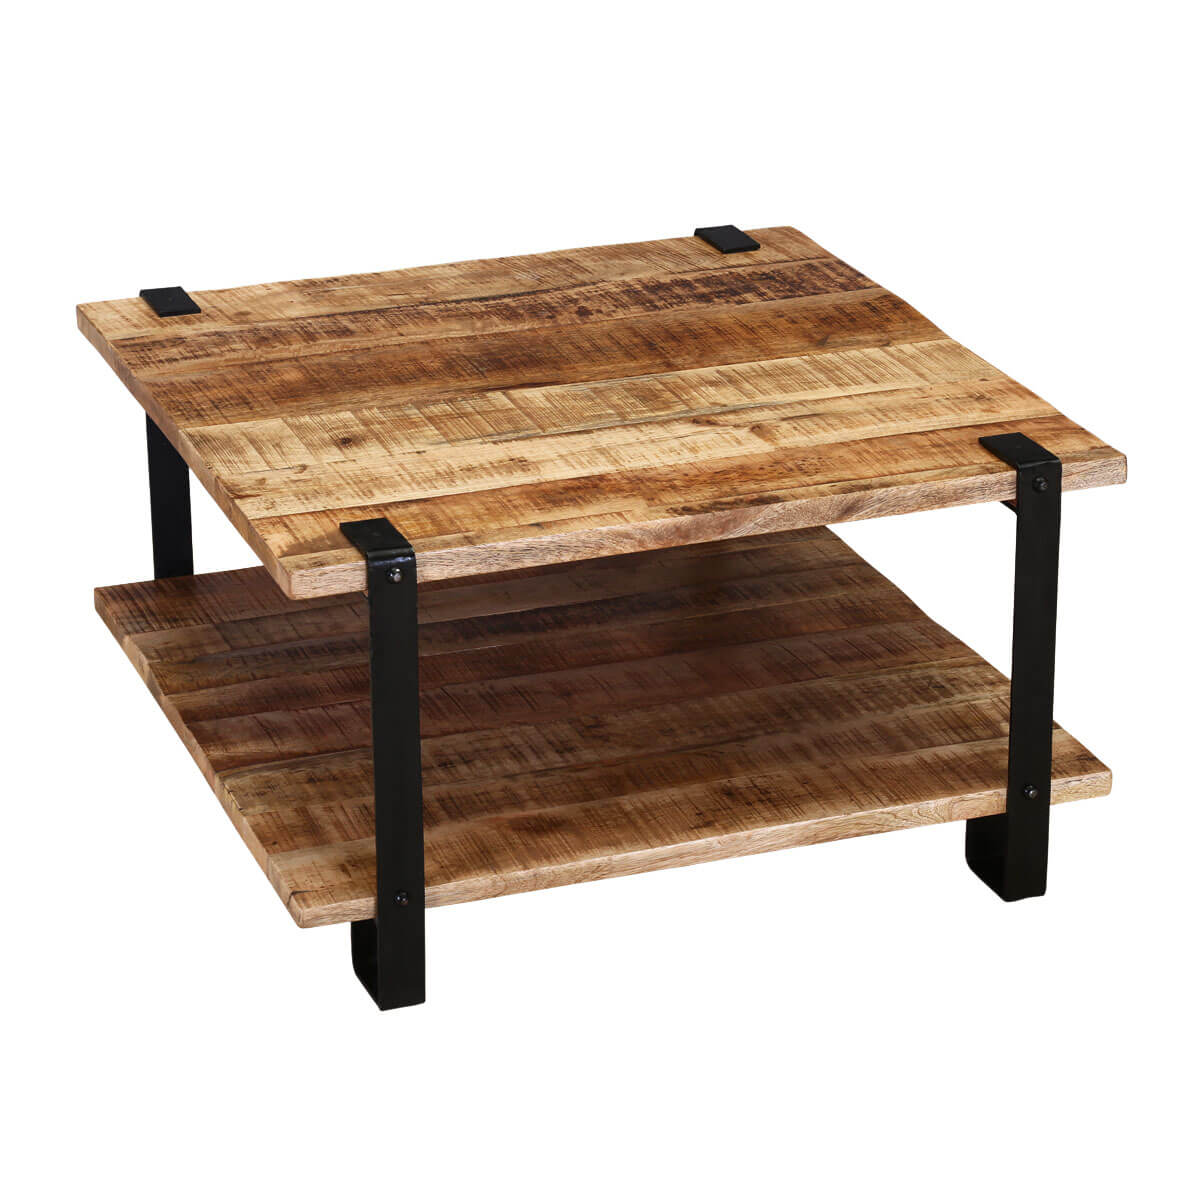 Roxborough rustic industrial square coffee table with saw marks Coffee tables rustic